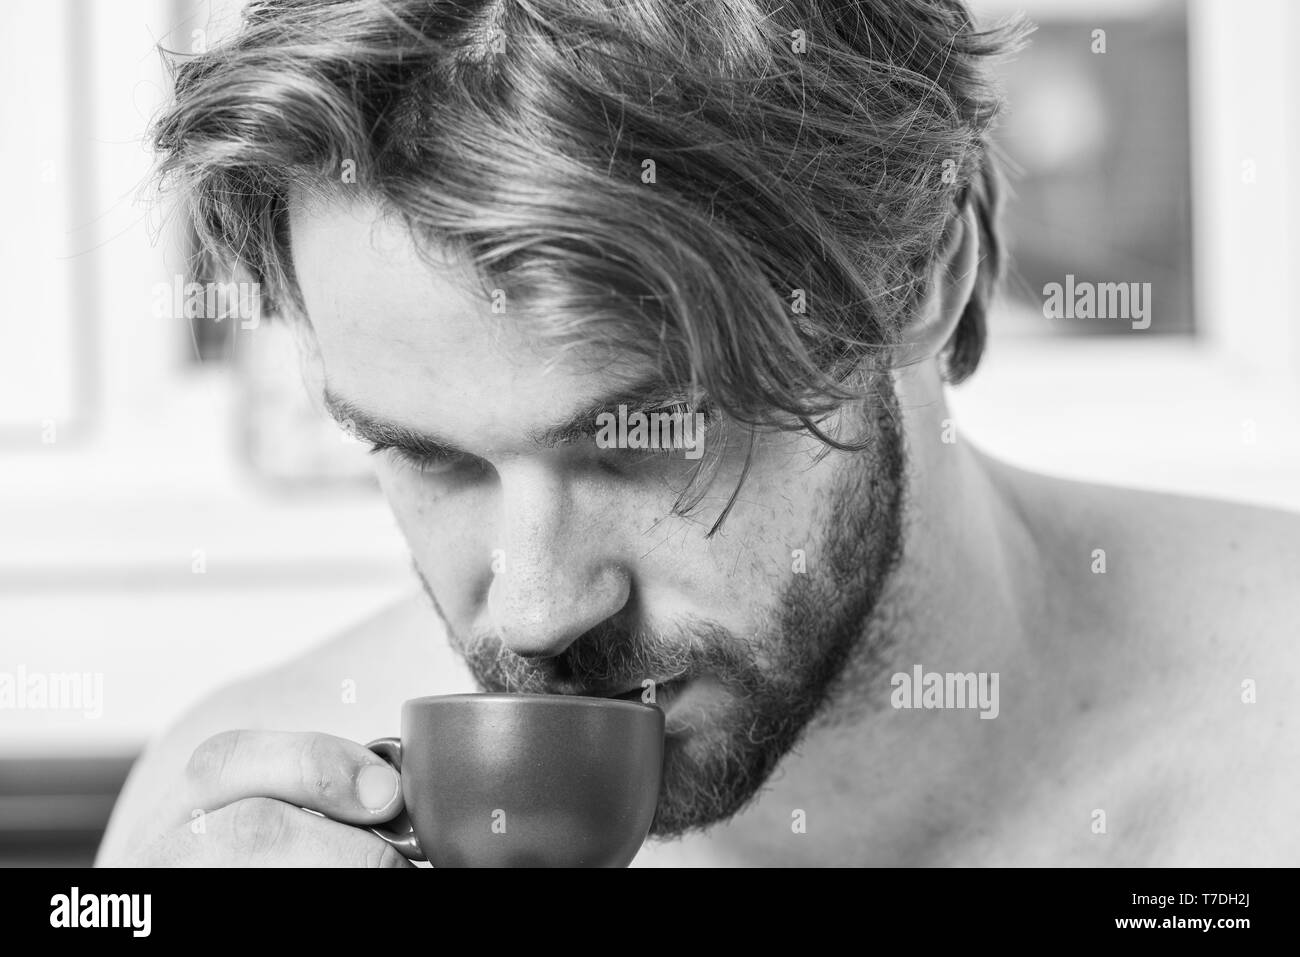 First sip. Every morning with his coffee. Man bearded handsome macho hold cup of coffee. Best time to have your cup of coffee. Guy attractive appearance man enjoy hot fresh brewed coffee close up. - Stock Image